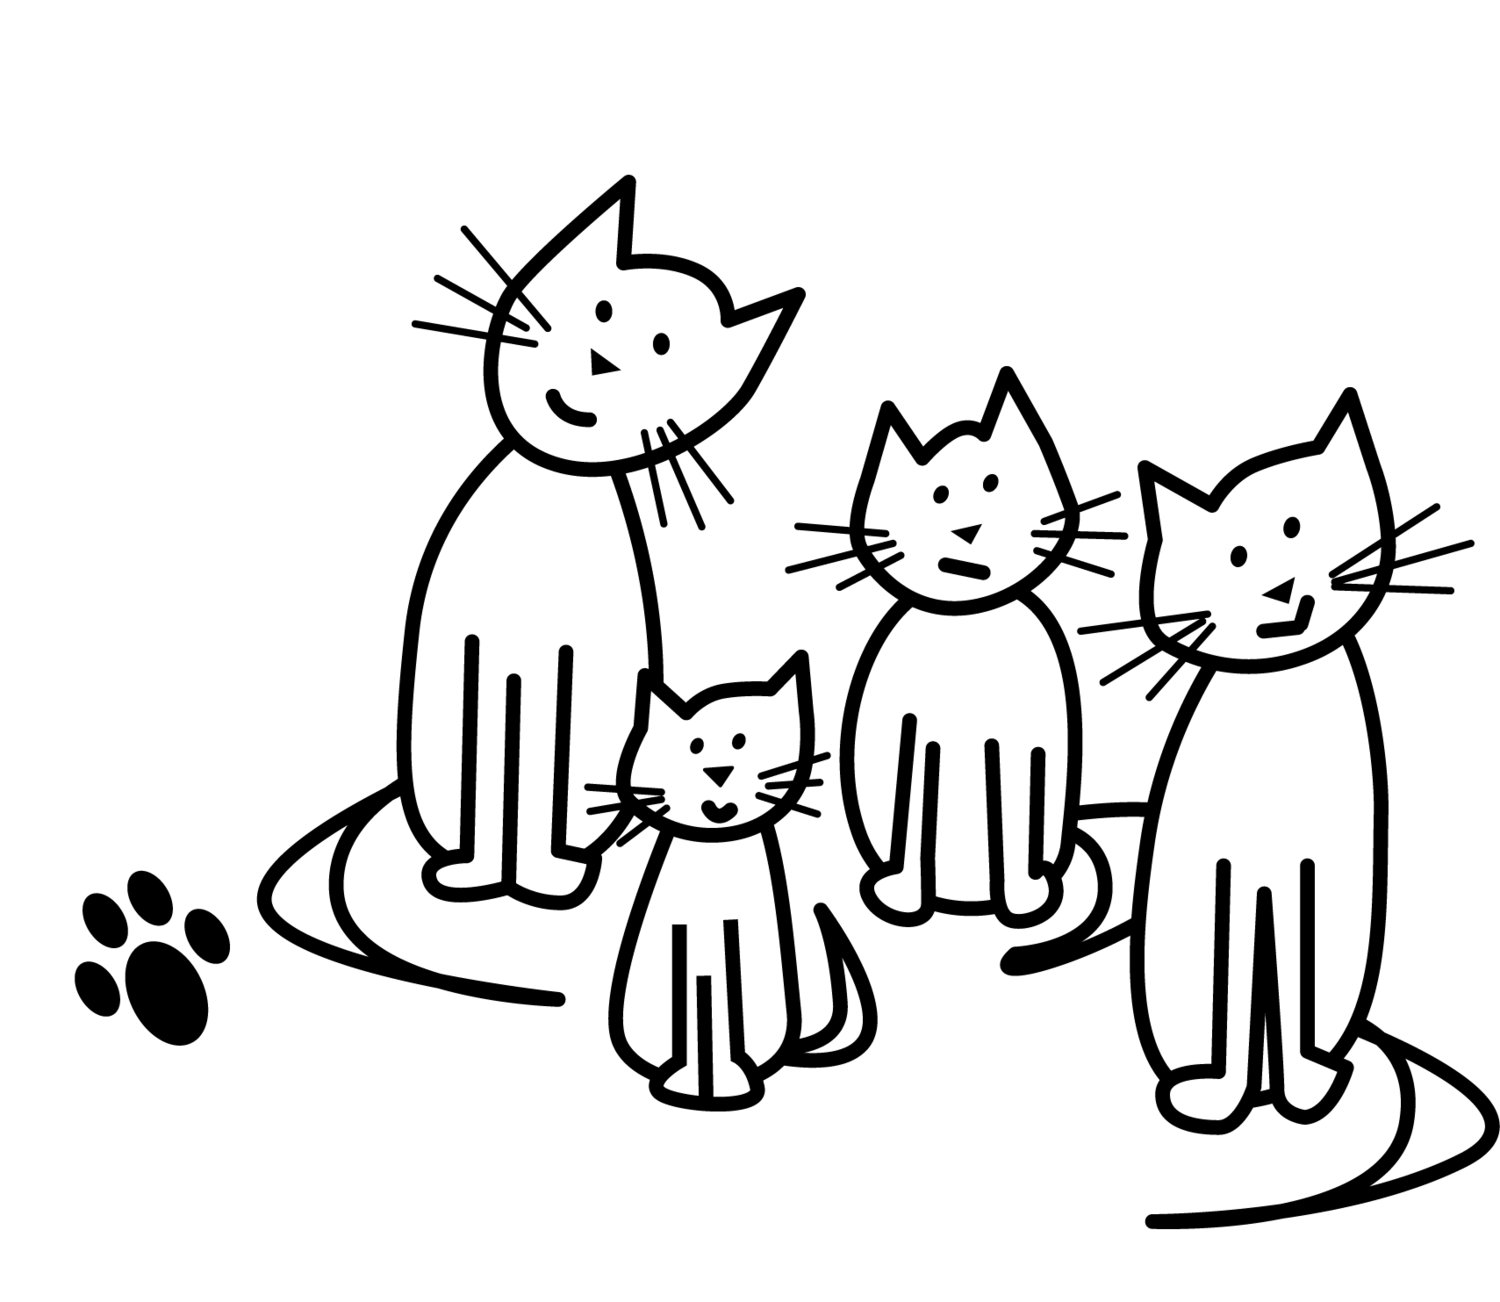 Washington Heights Cat Colony